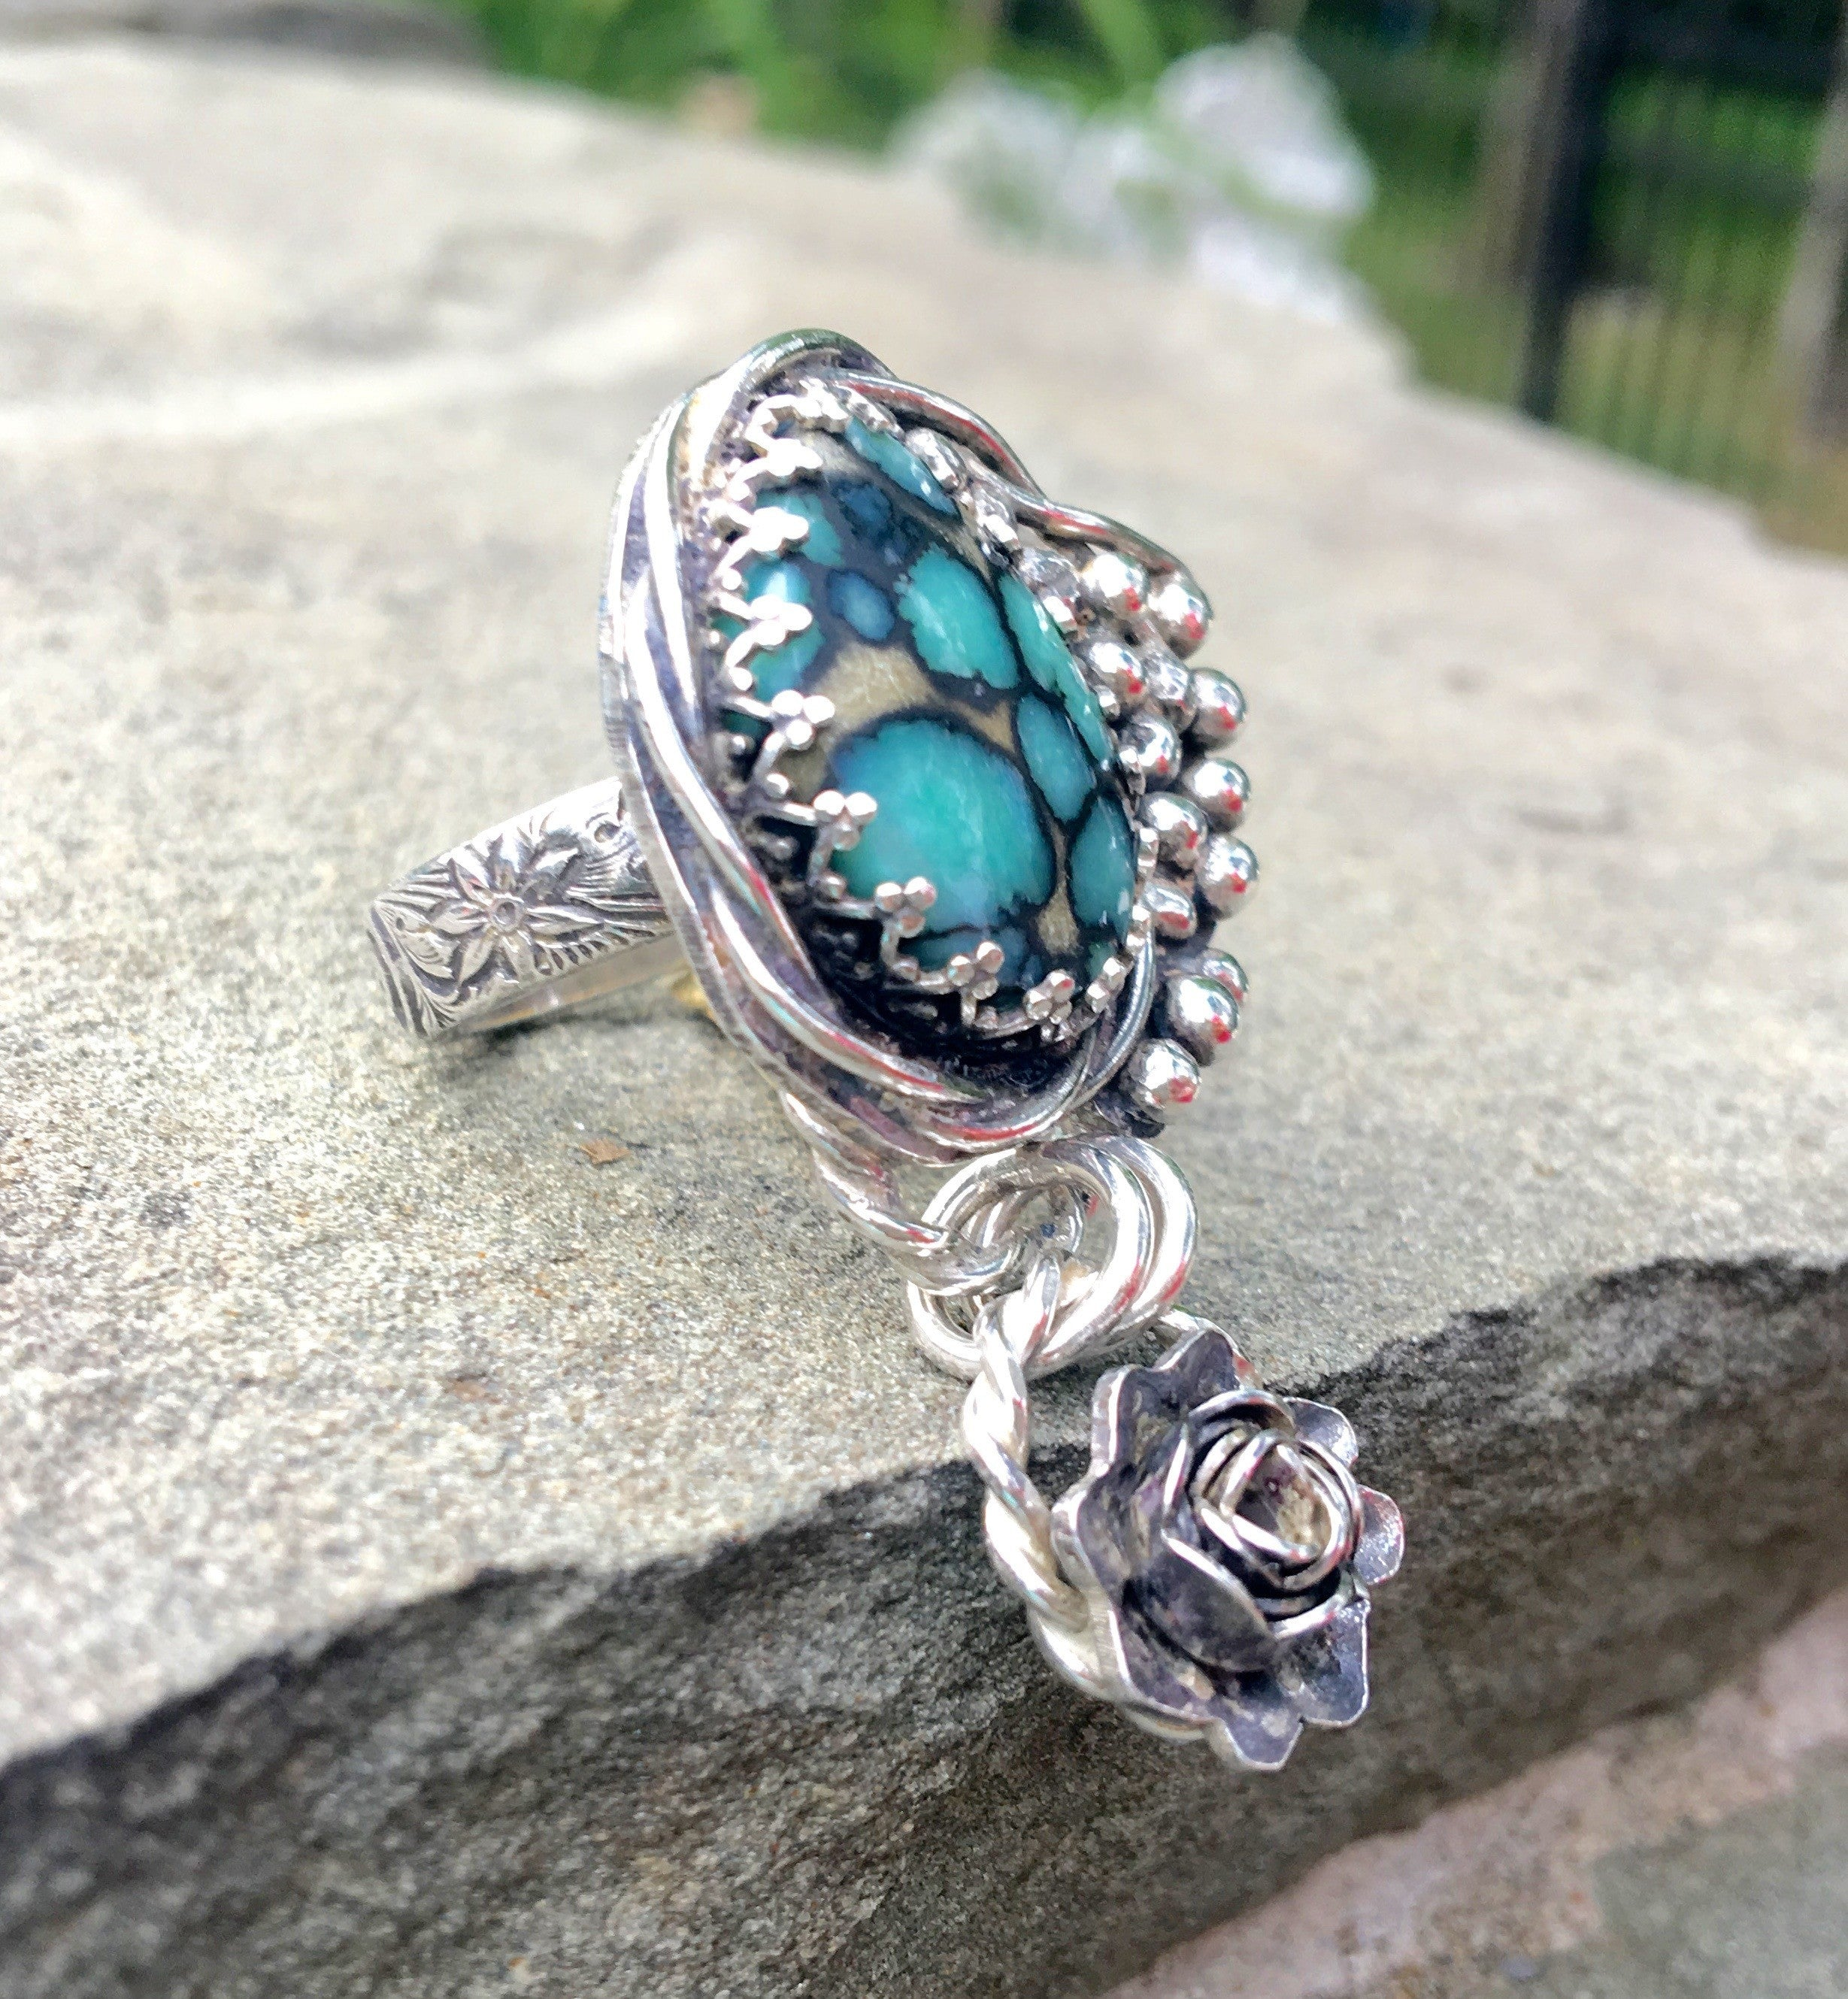 Desert Bloom Turquoise Grapevine Ring US Size 7